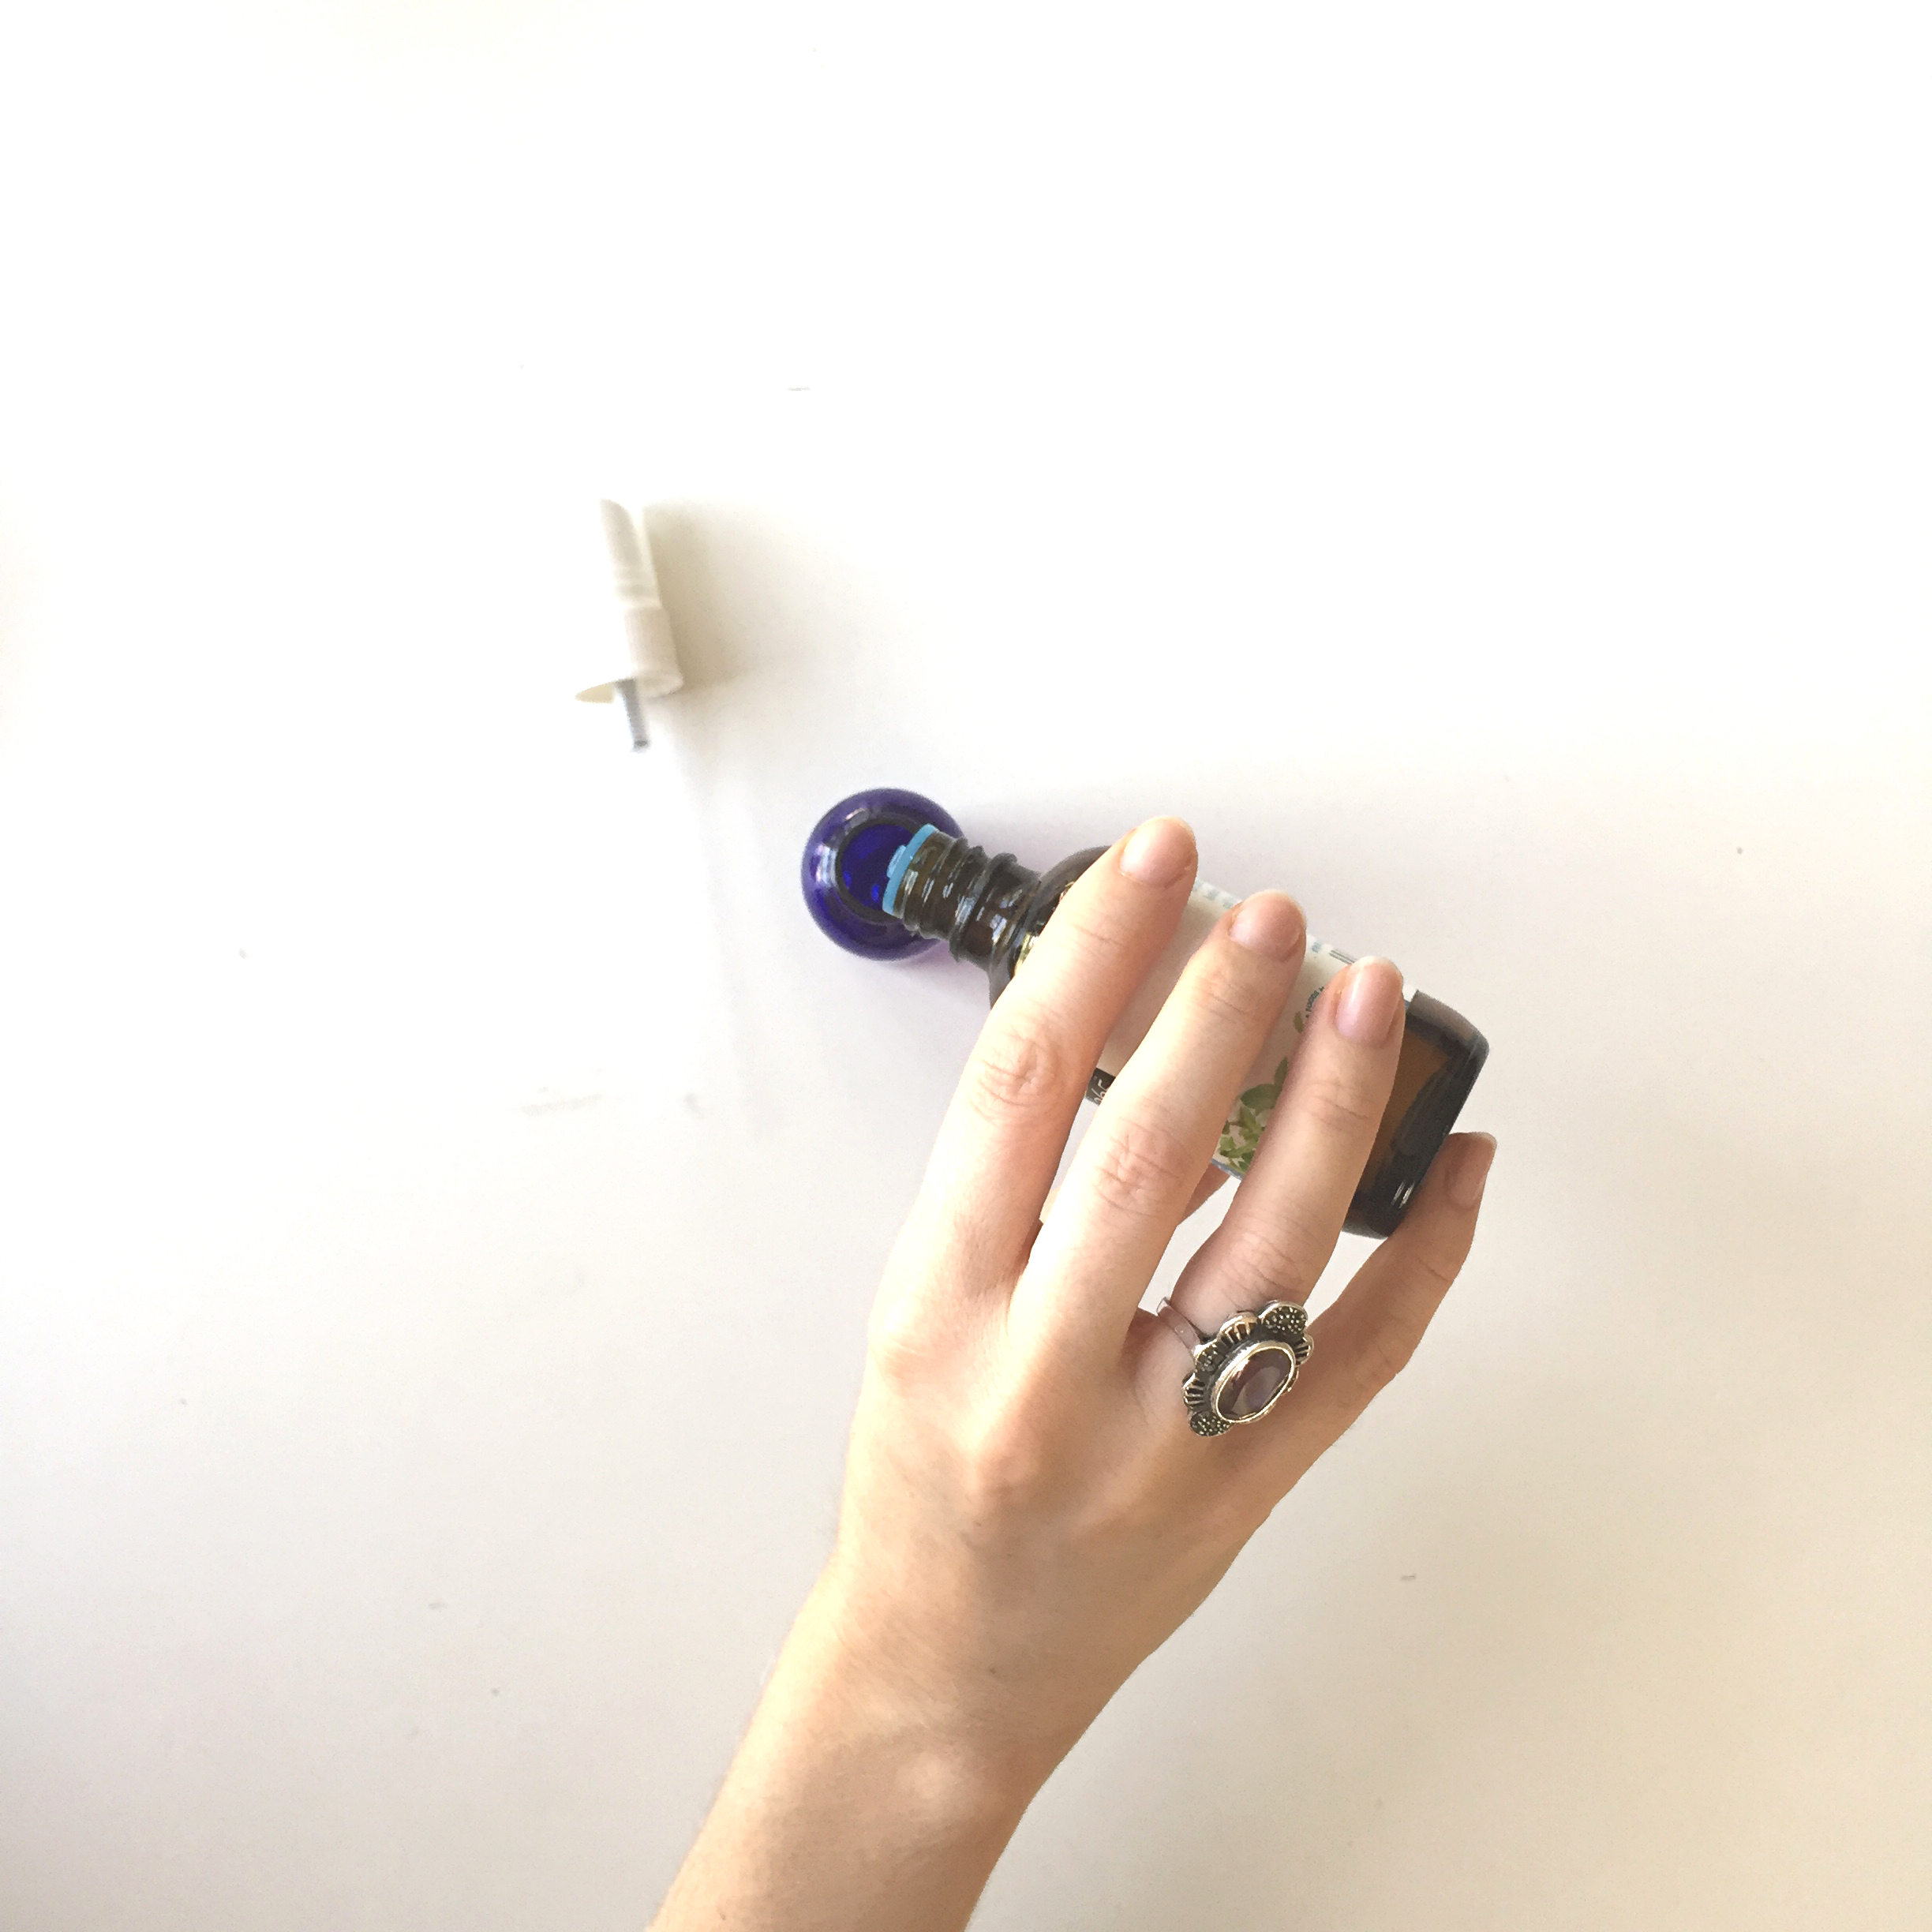 How to Make Easy Cooling Misting Spray DIY with Essential Oils